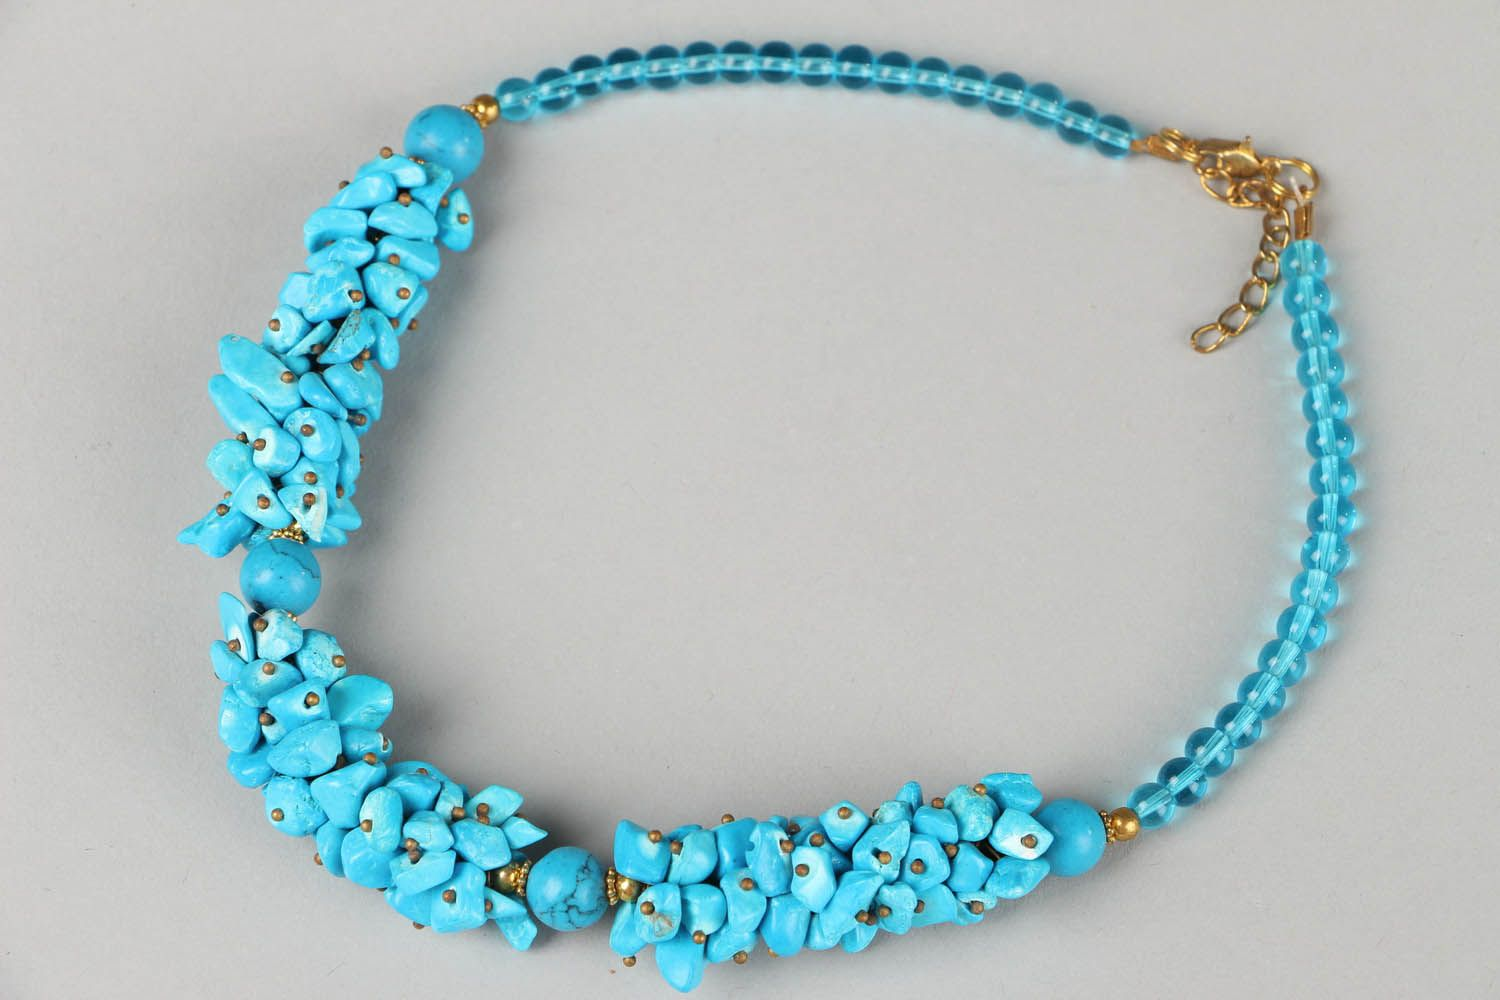 Necklace made of turquoise photo 1